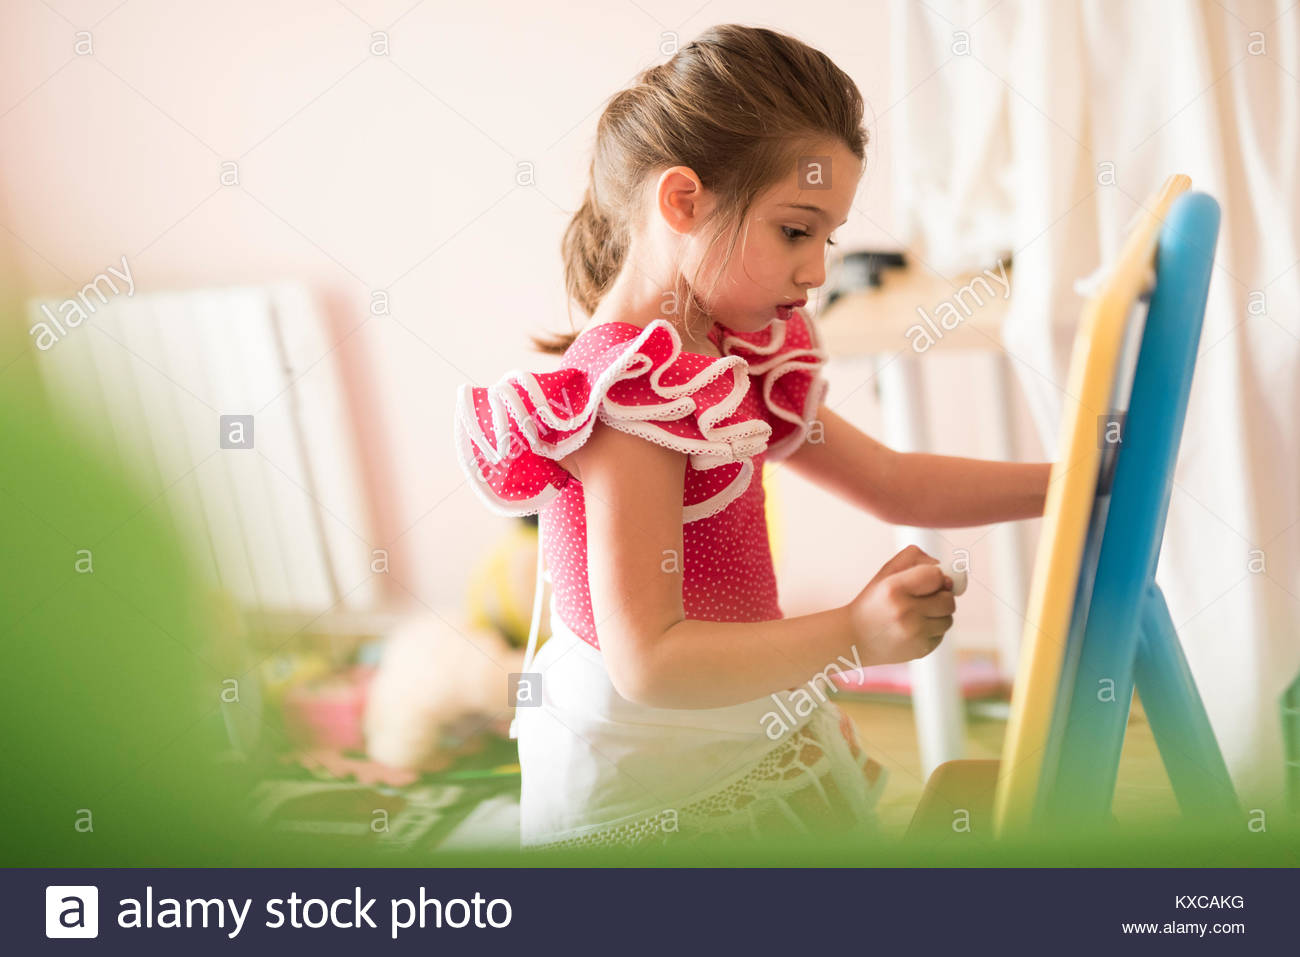 Little girl drawing on chalk board in children's room - Stock Image